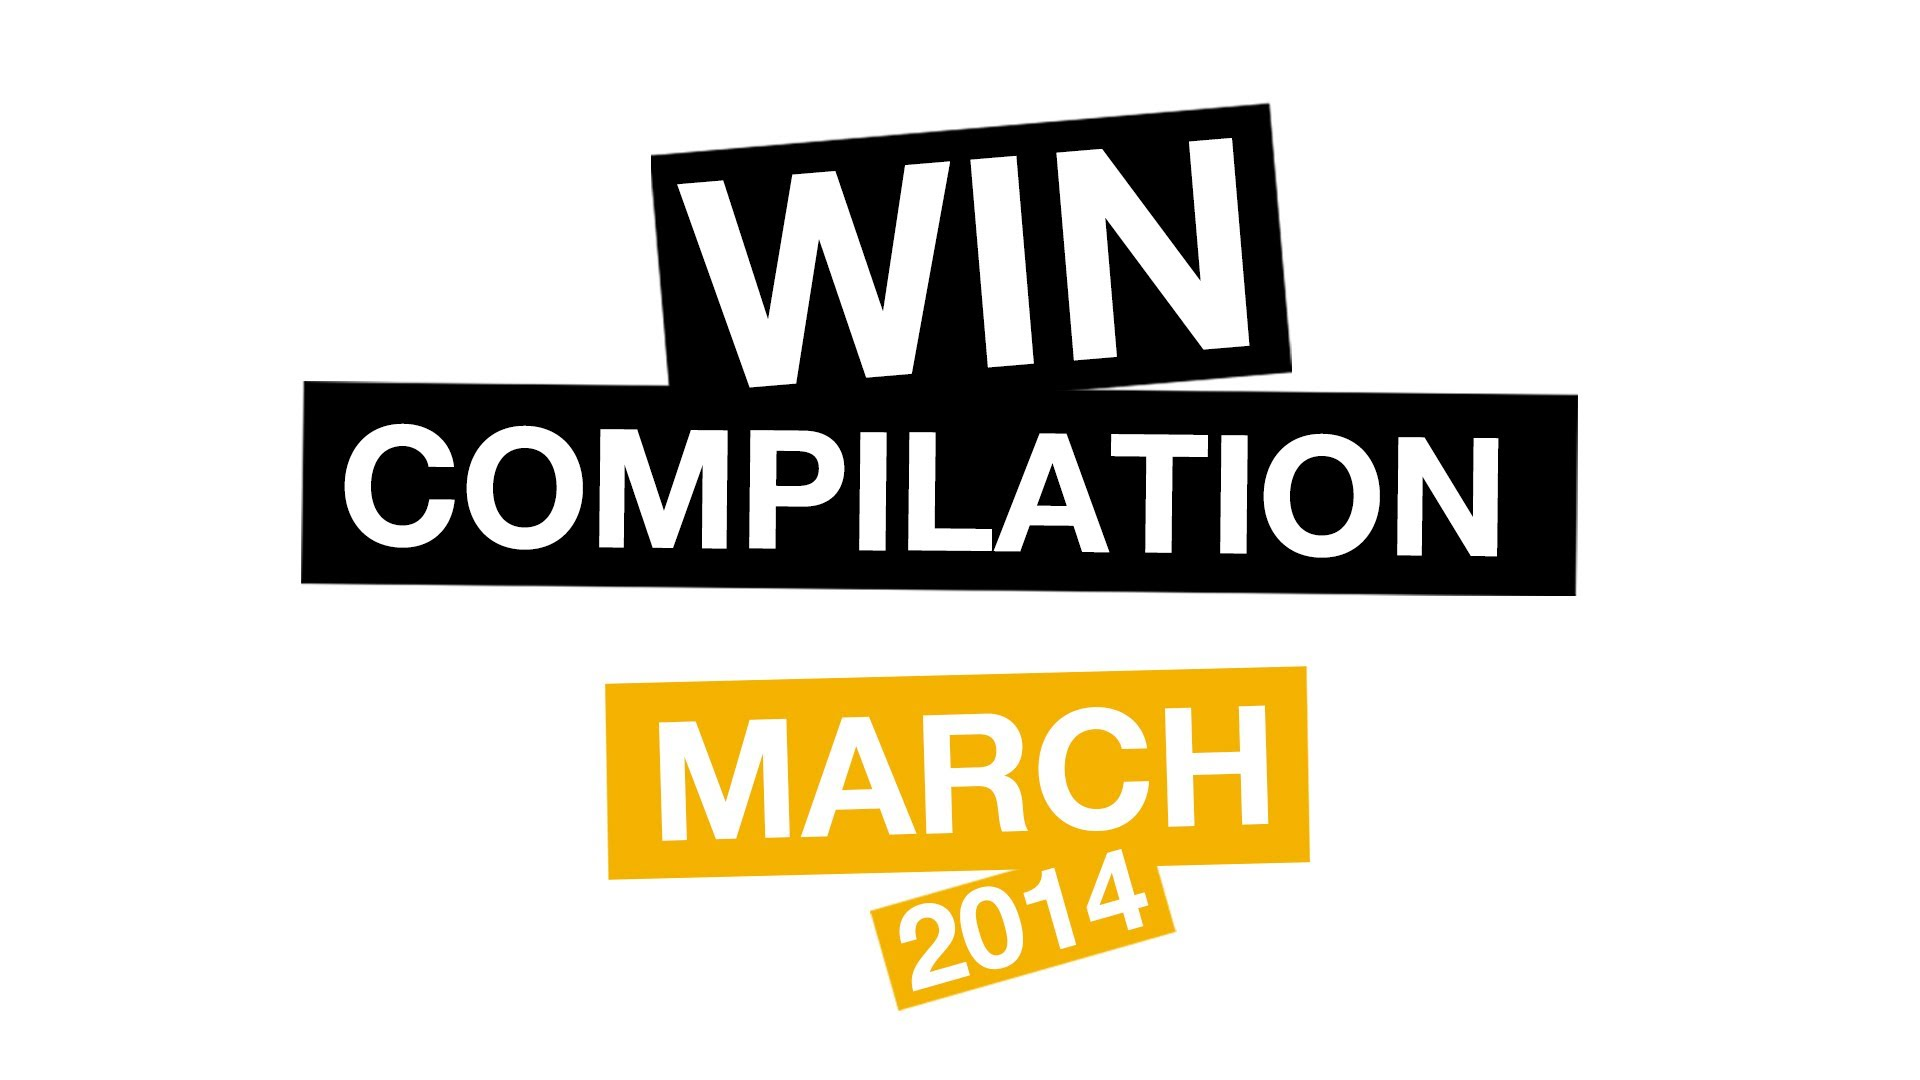 WIN Compilation March 2014